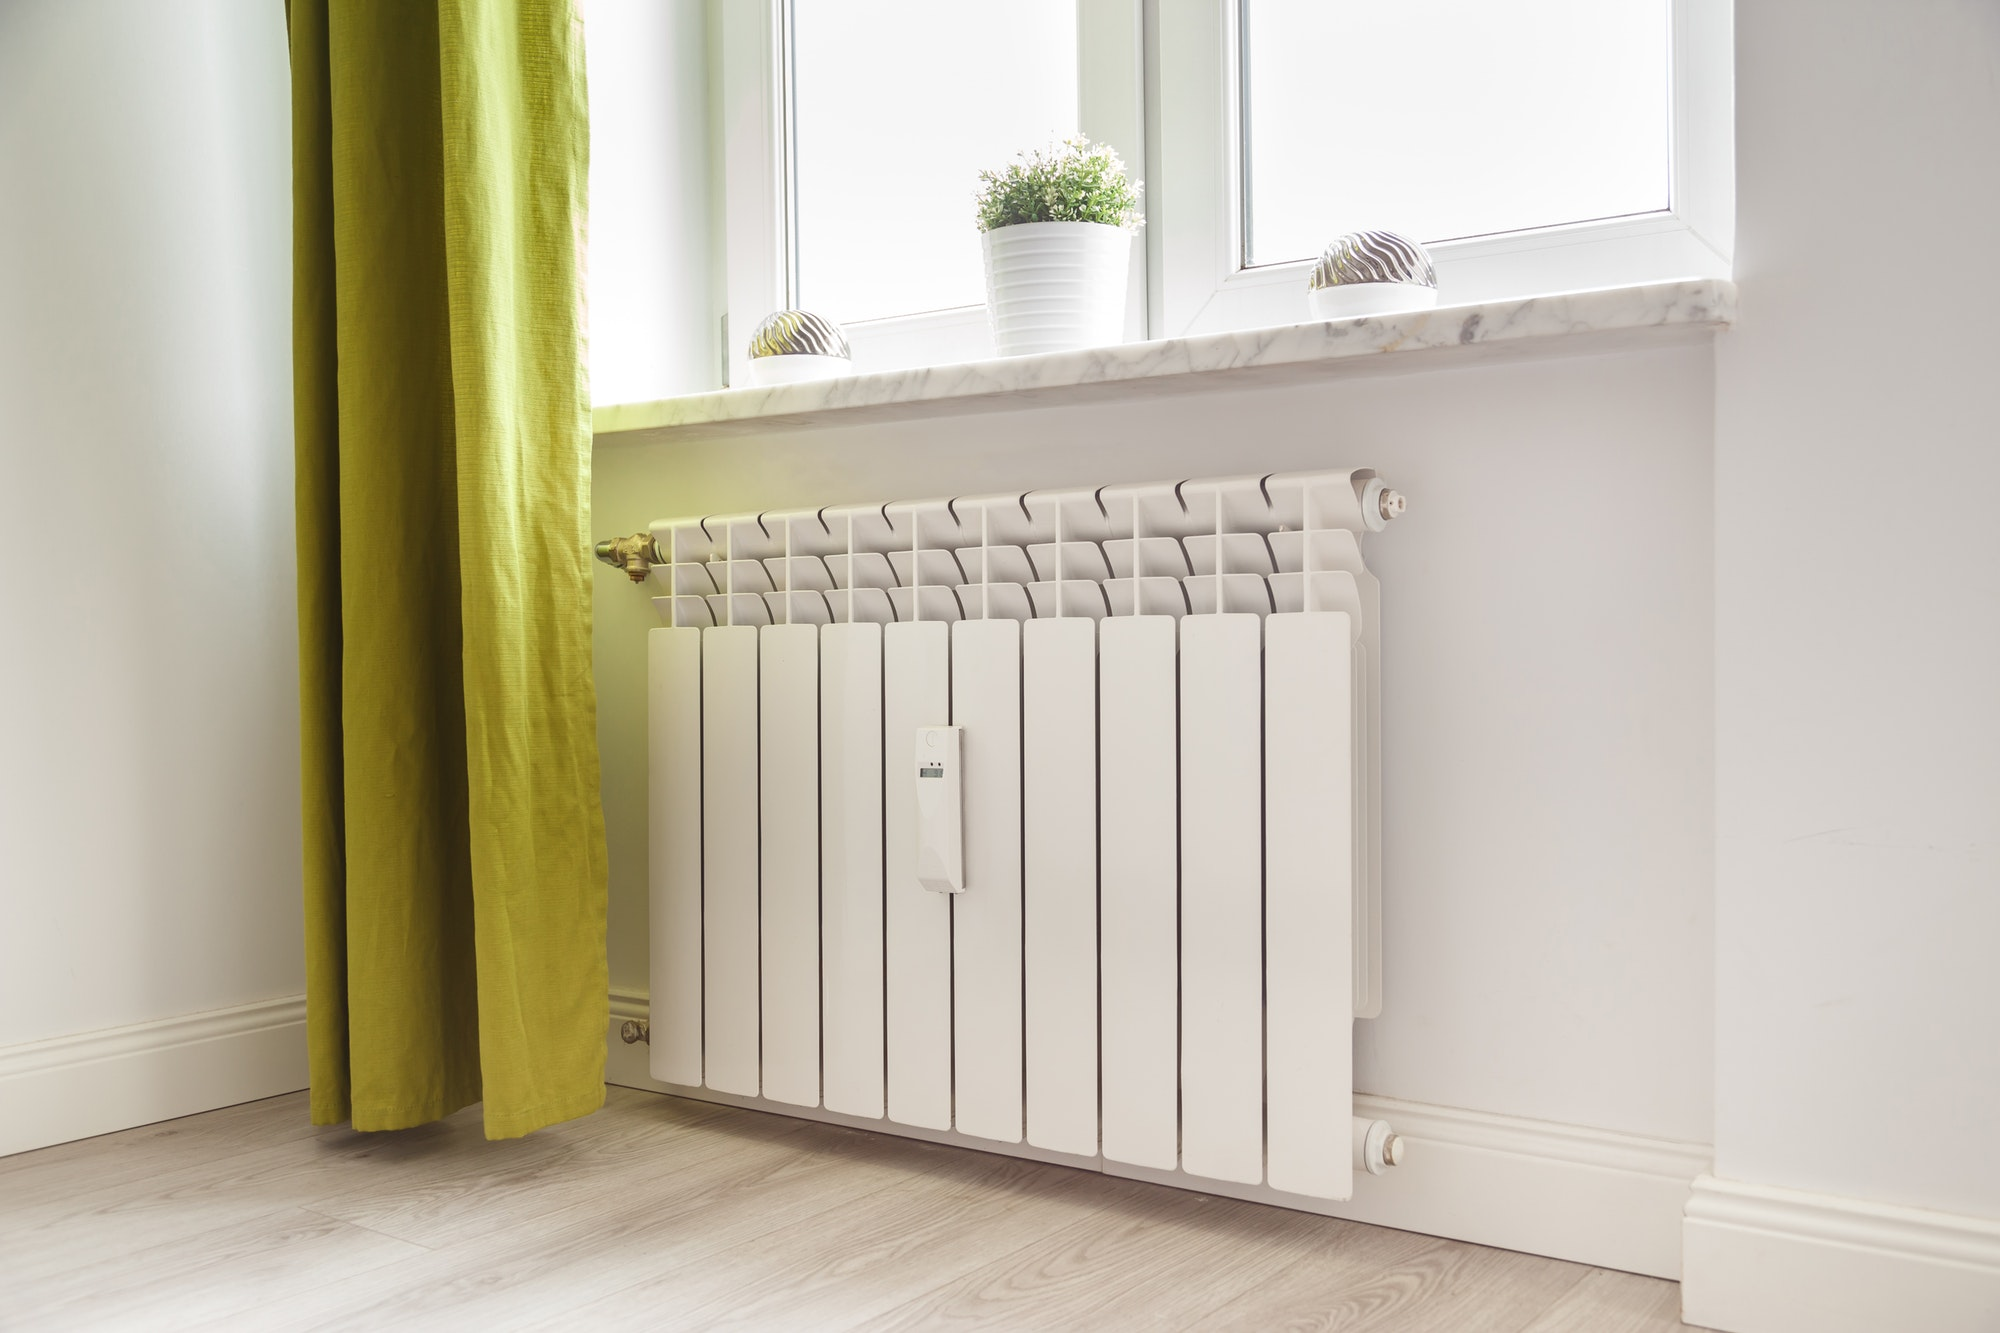 Heating white radiator radiator in living room.